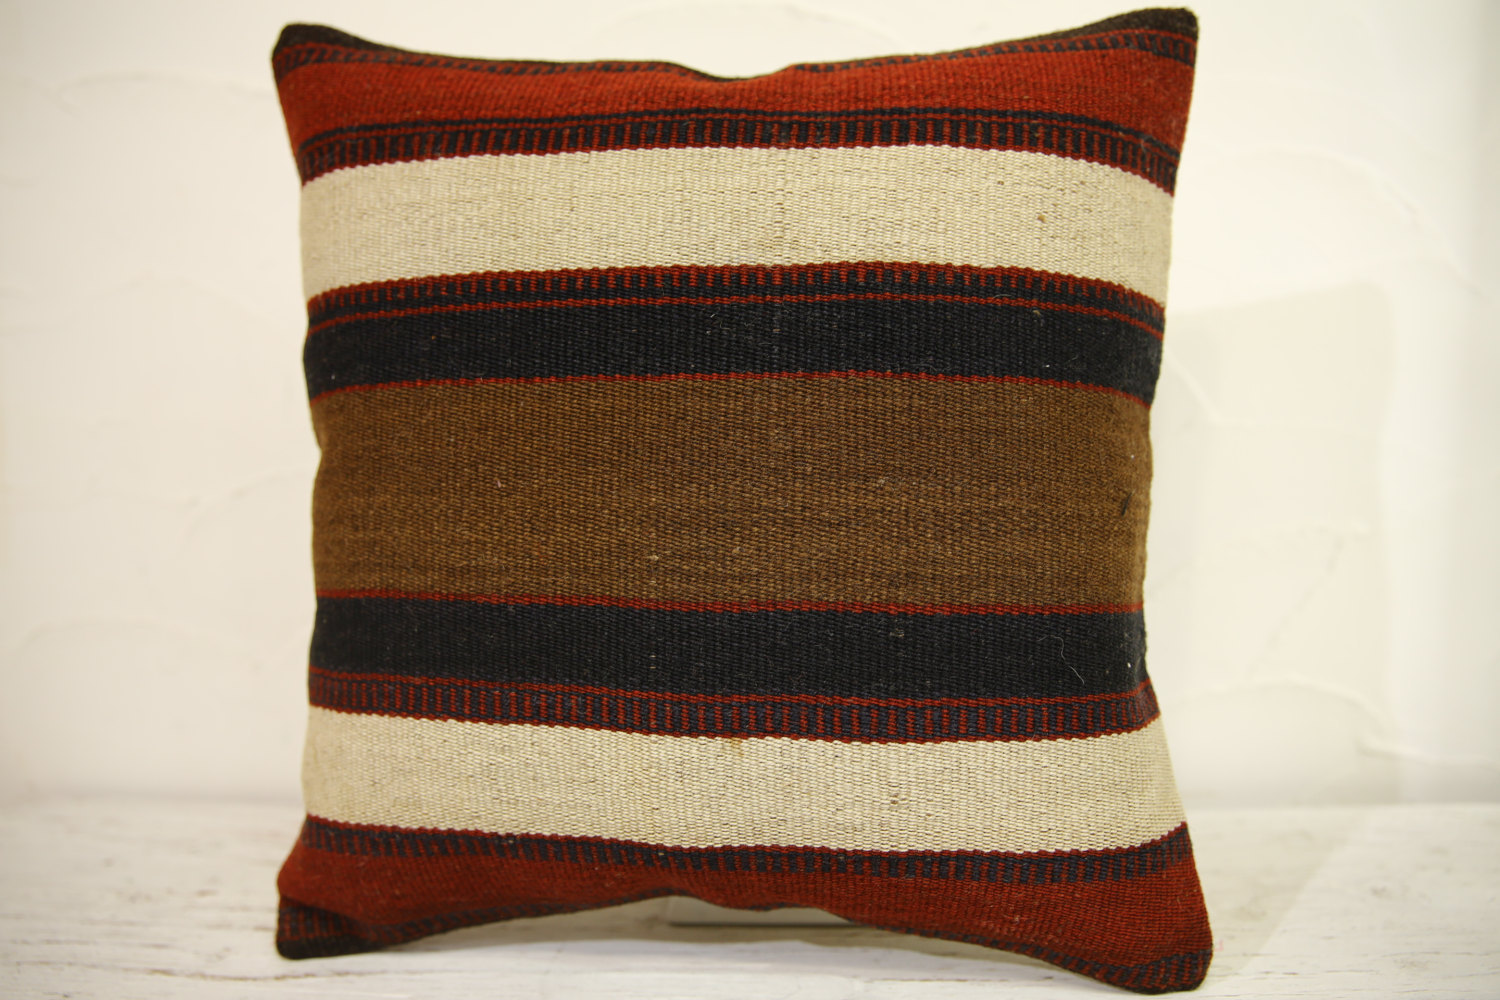 Kilim Pillows | 16x16 | Turkish pillows | 1155 | Ethnic Pillow , Kelim cushion